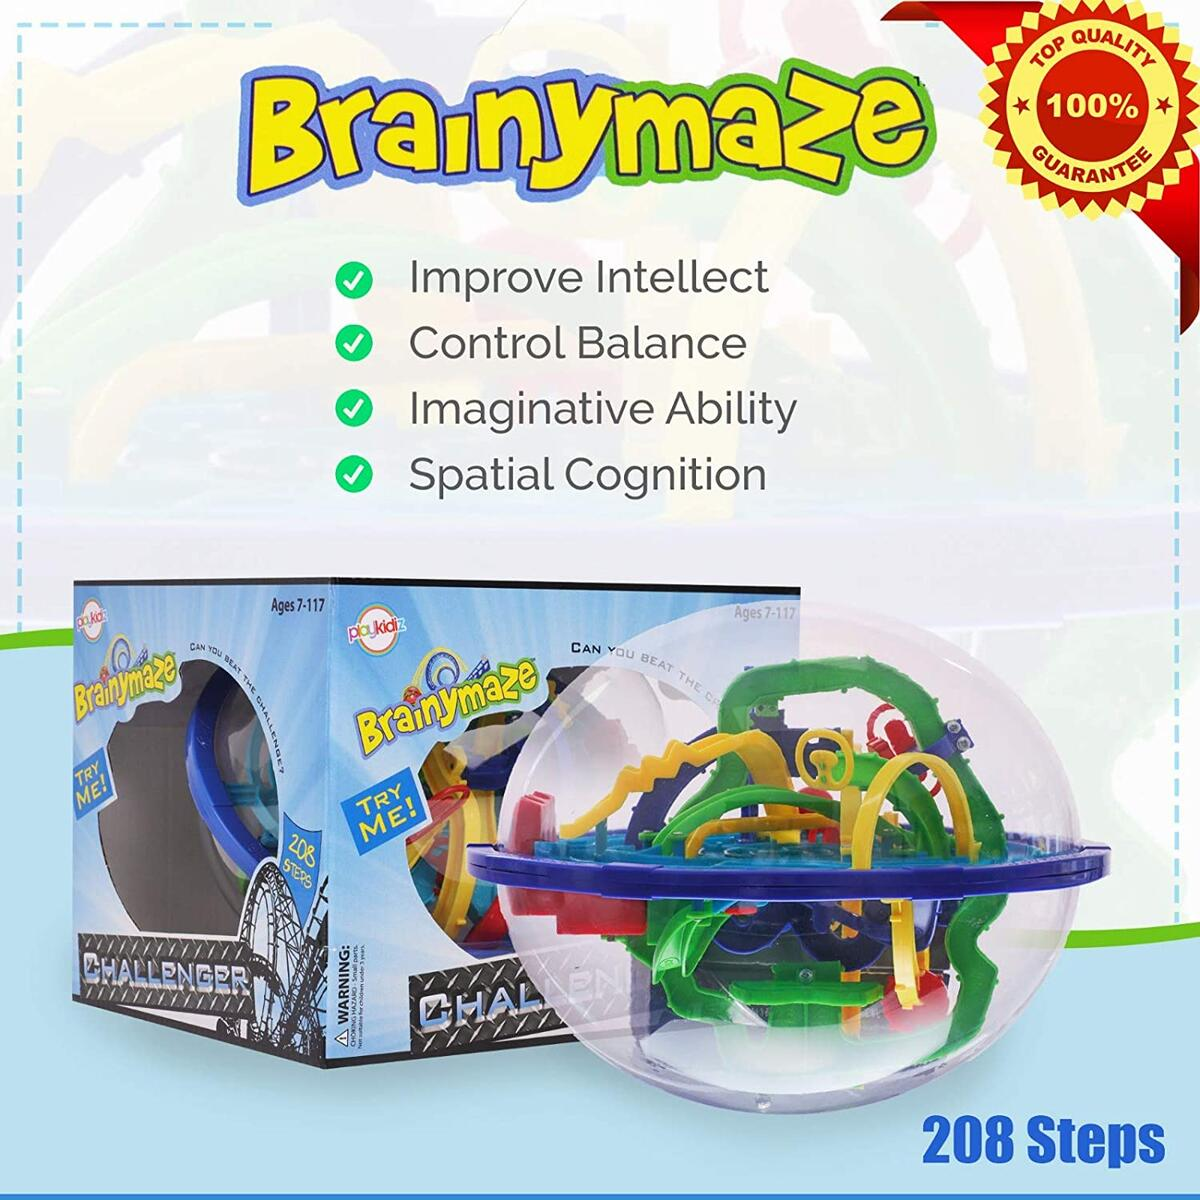 Brainymaze Challanger, 3D Maze Game with Over 200 Obstacles, Great Puzzle to Test Stabilizing Skills.